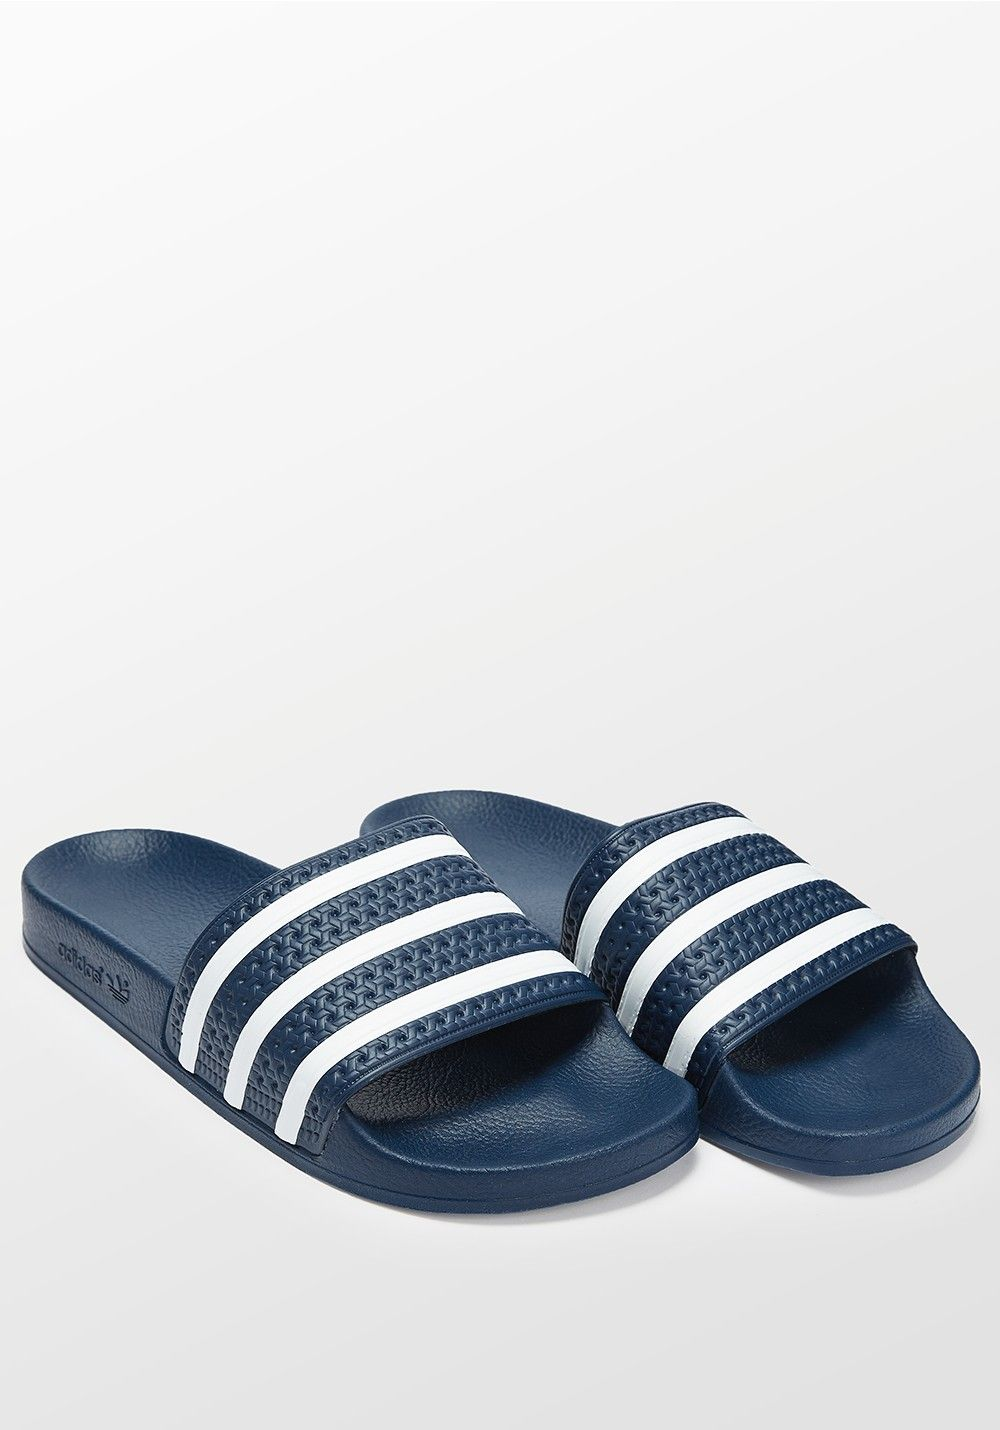 e5ca0291b599 Adidas Adilette navy blue and white slides